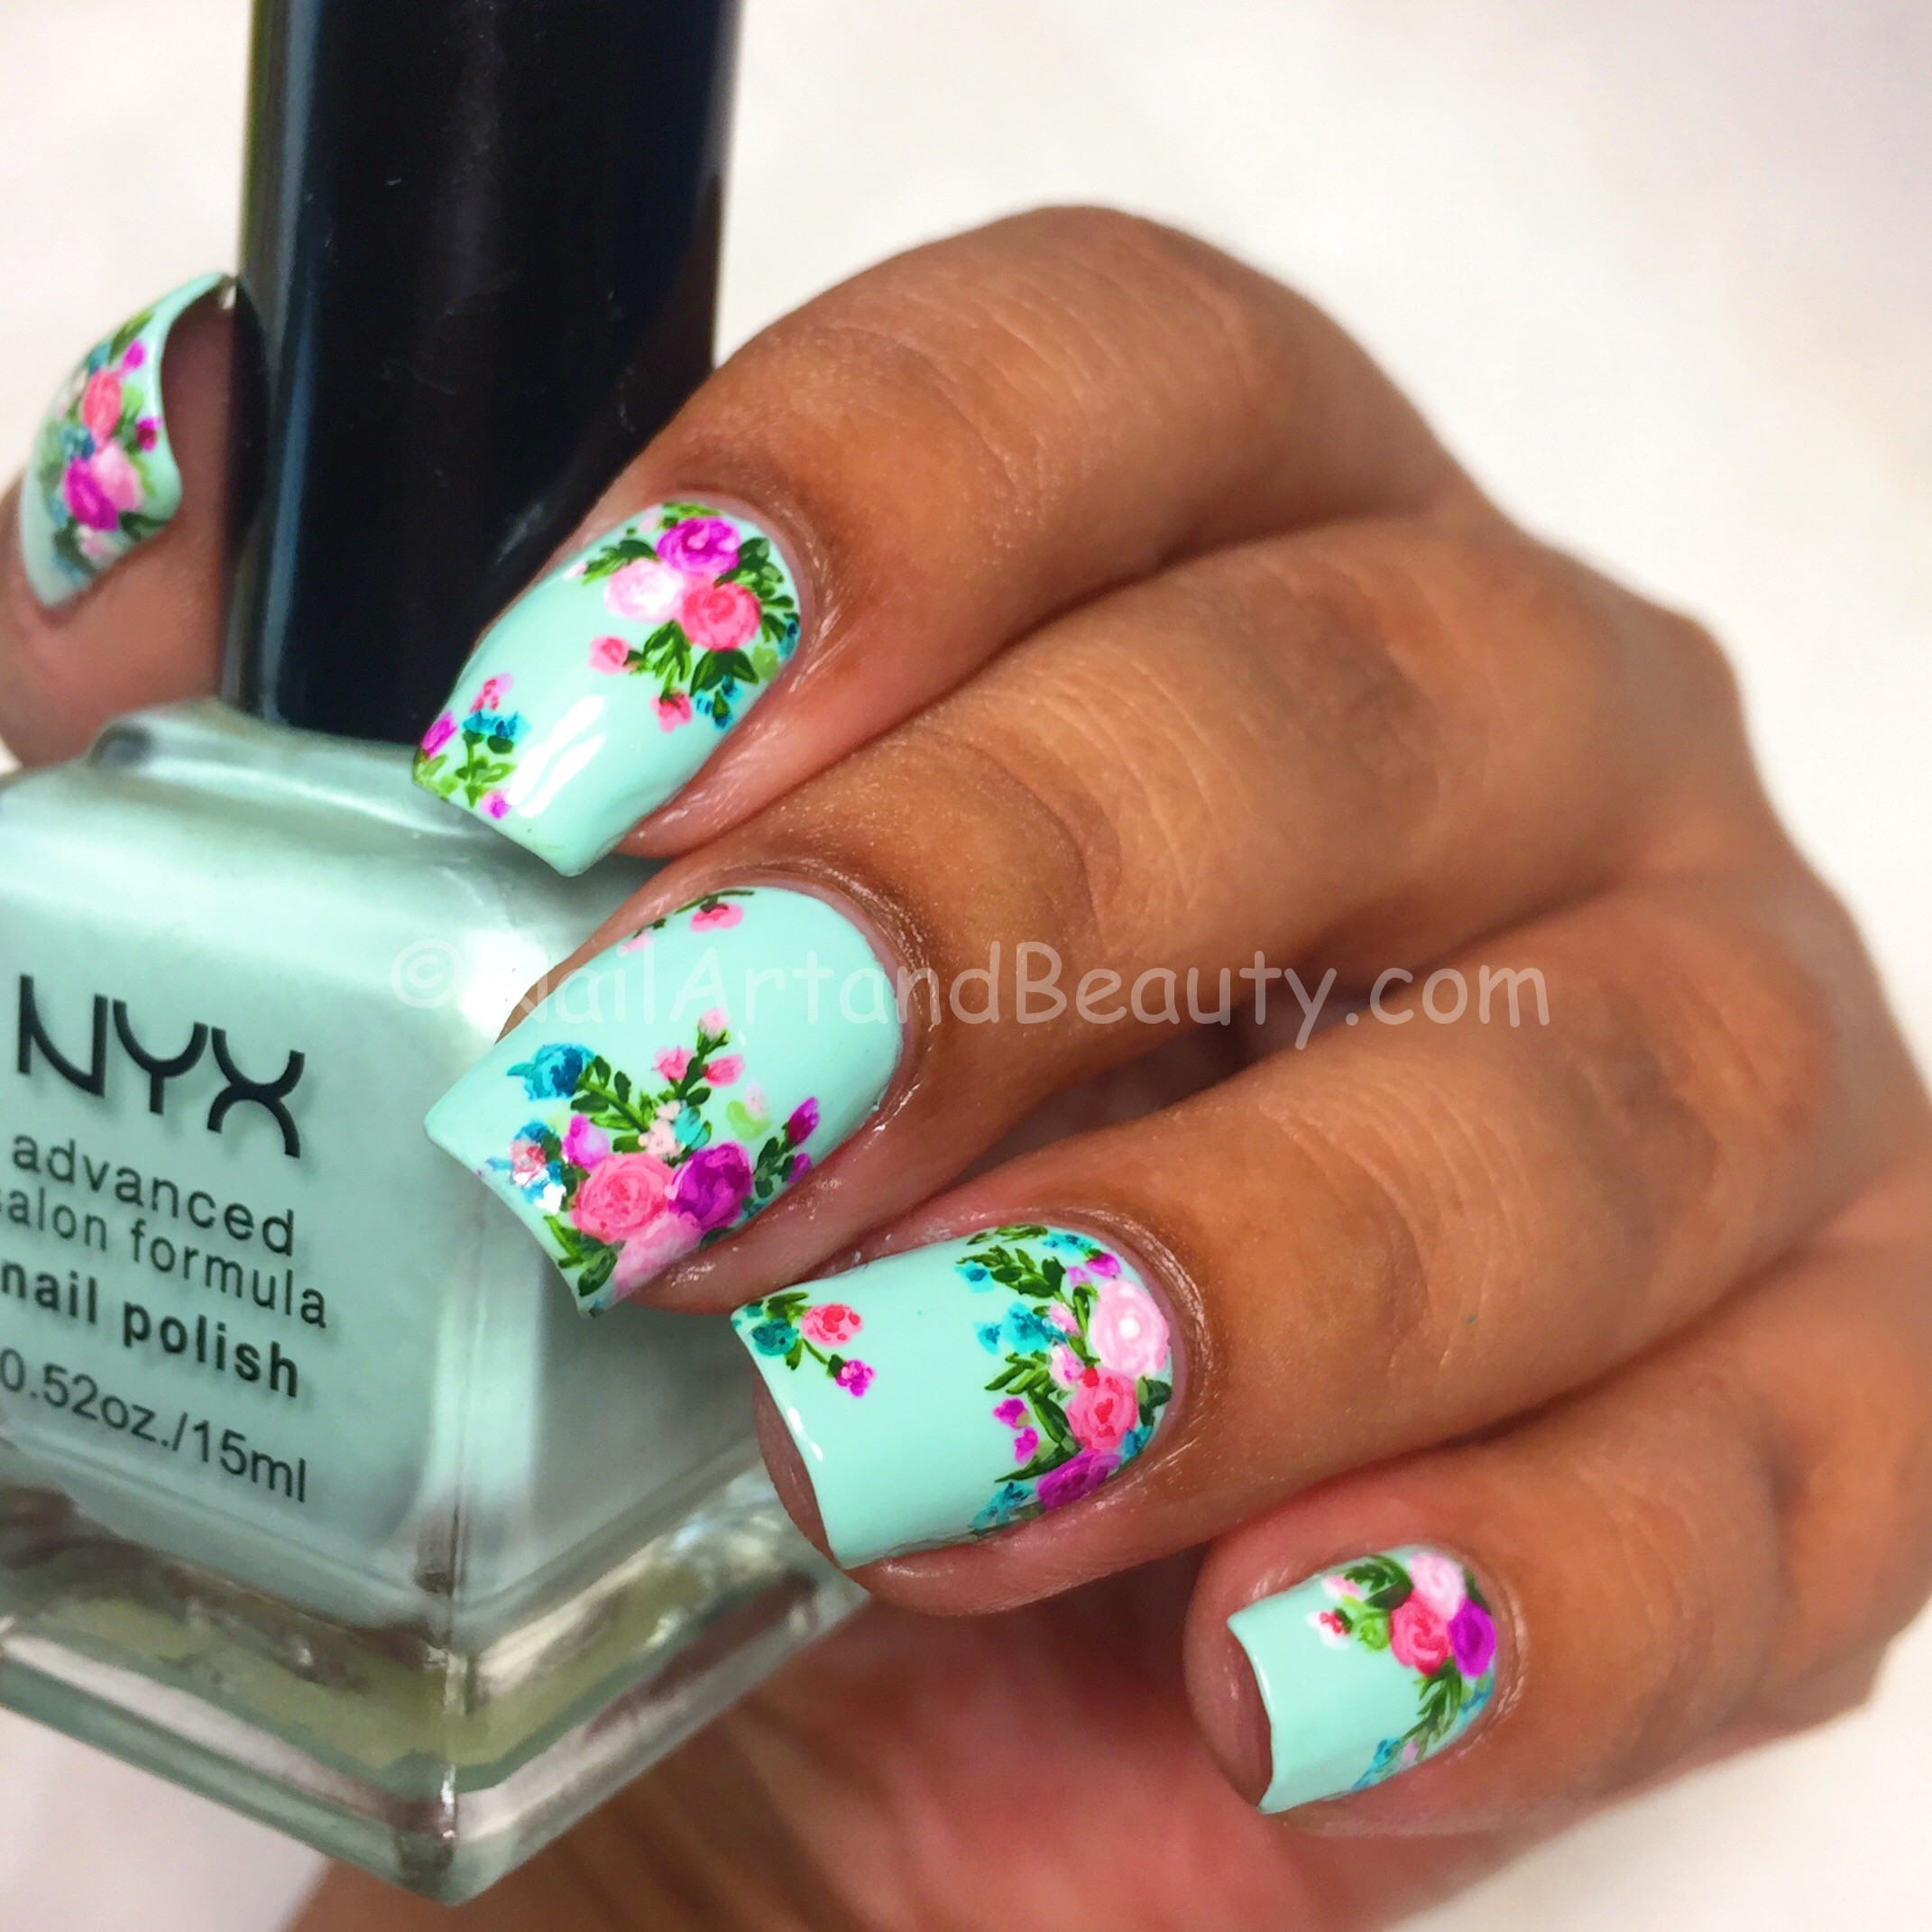 Wallpaper Inspired Nails